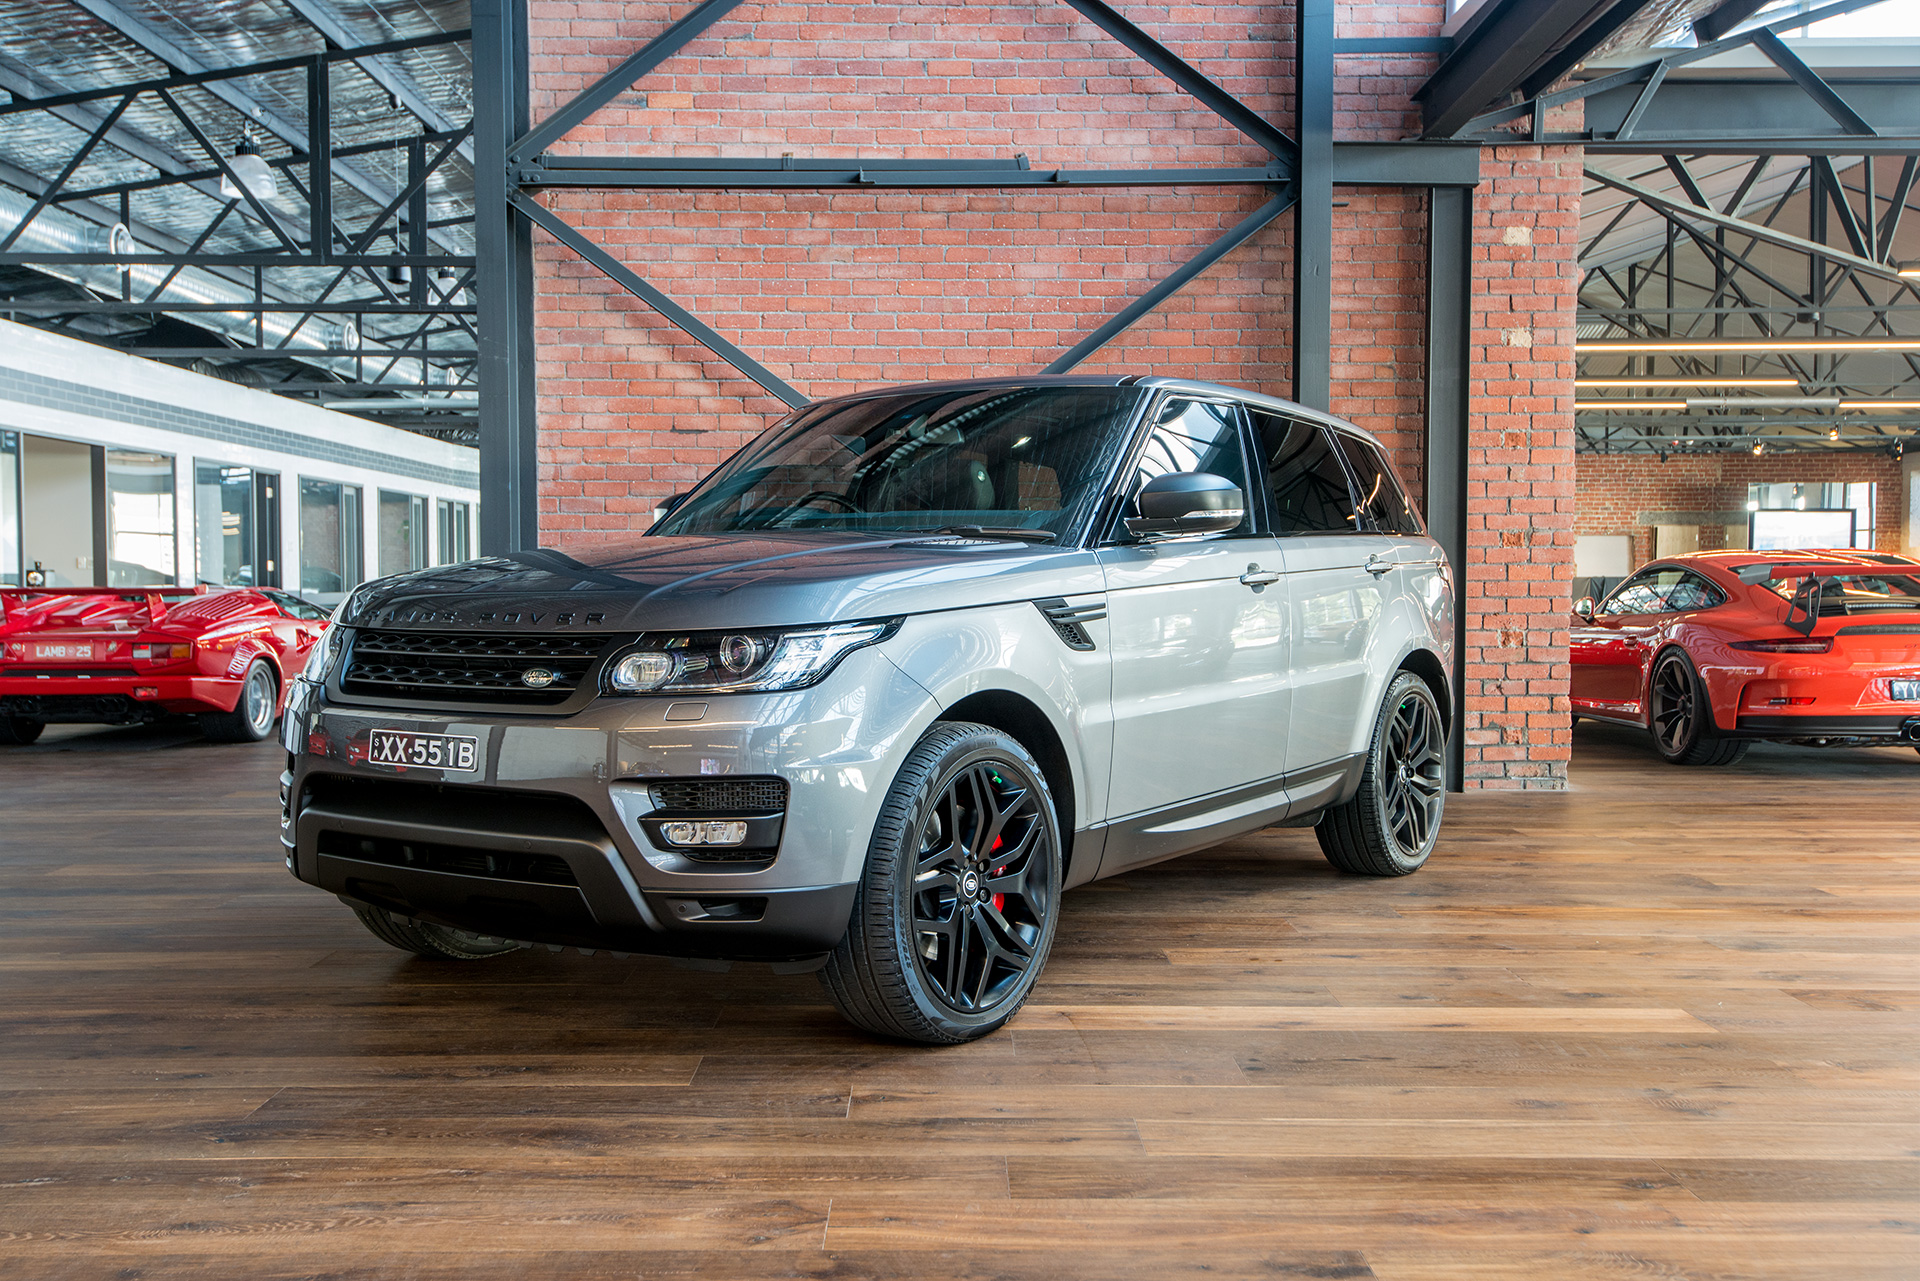 Car Door Unlock Kit >> 2015 Range Rover Sport SDV8 - Richmonds - Classic and Prestige Cars - Storage and Sales ...